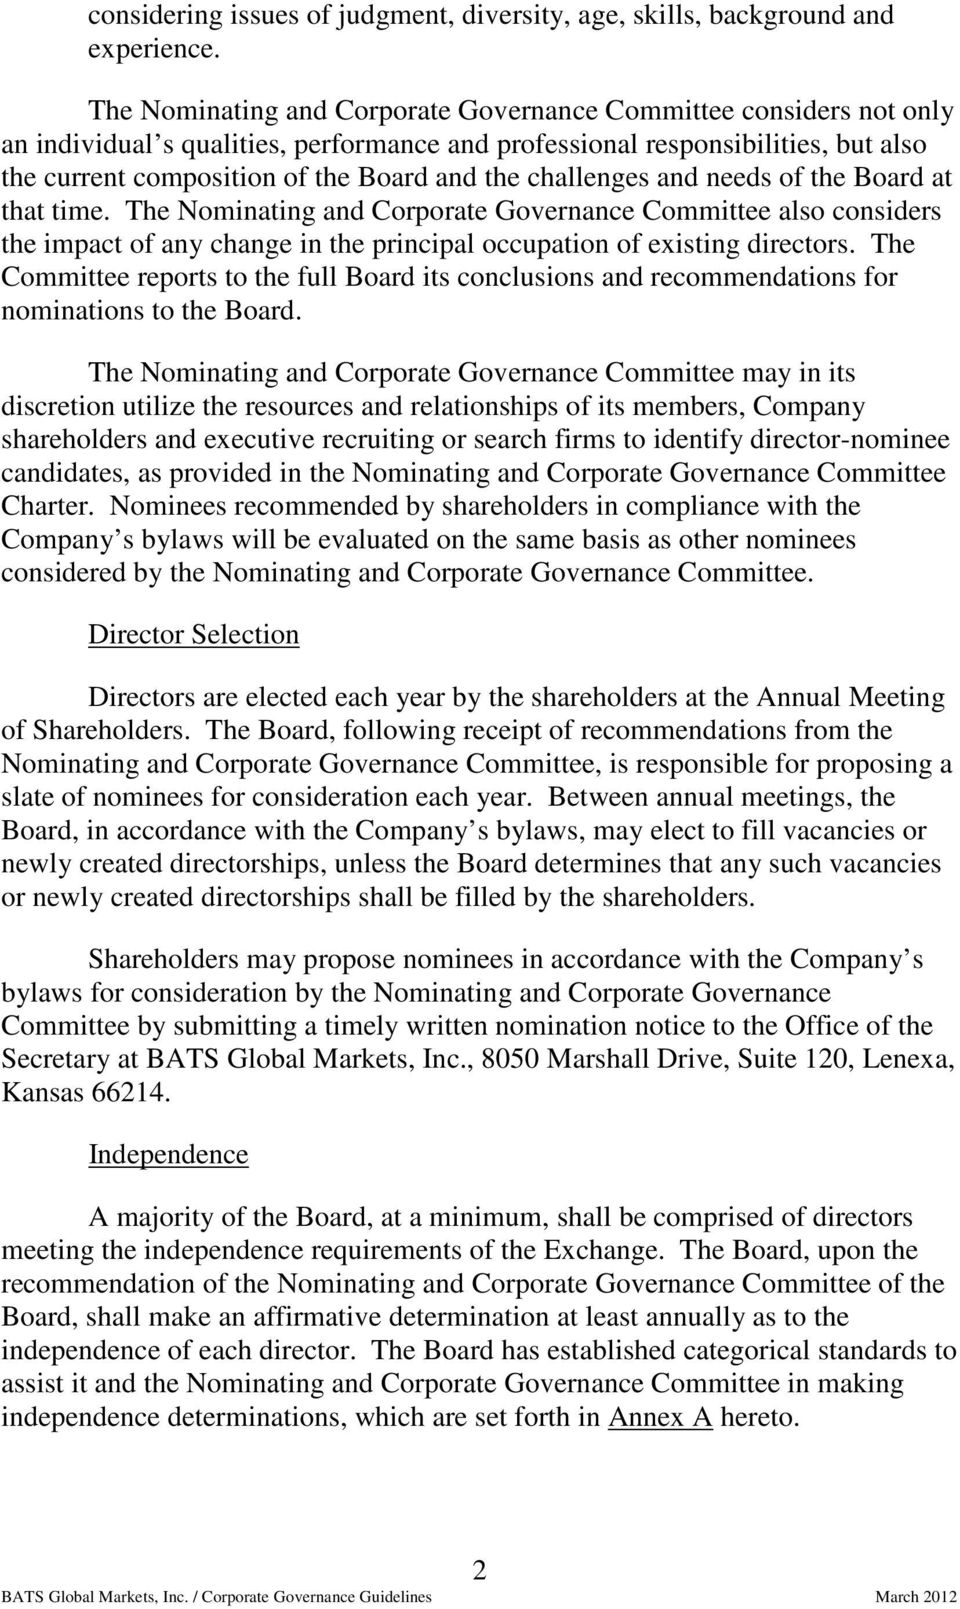 challenges and needs of the Board at that time. The Nominating and Corporate Governance Committee also considers the impact of any change in the principal occupation of existing directors.